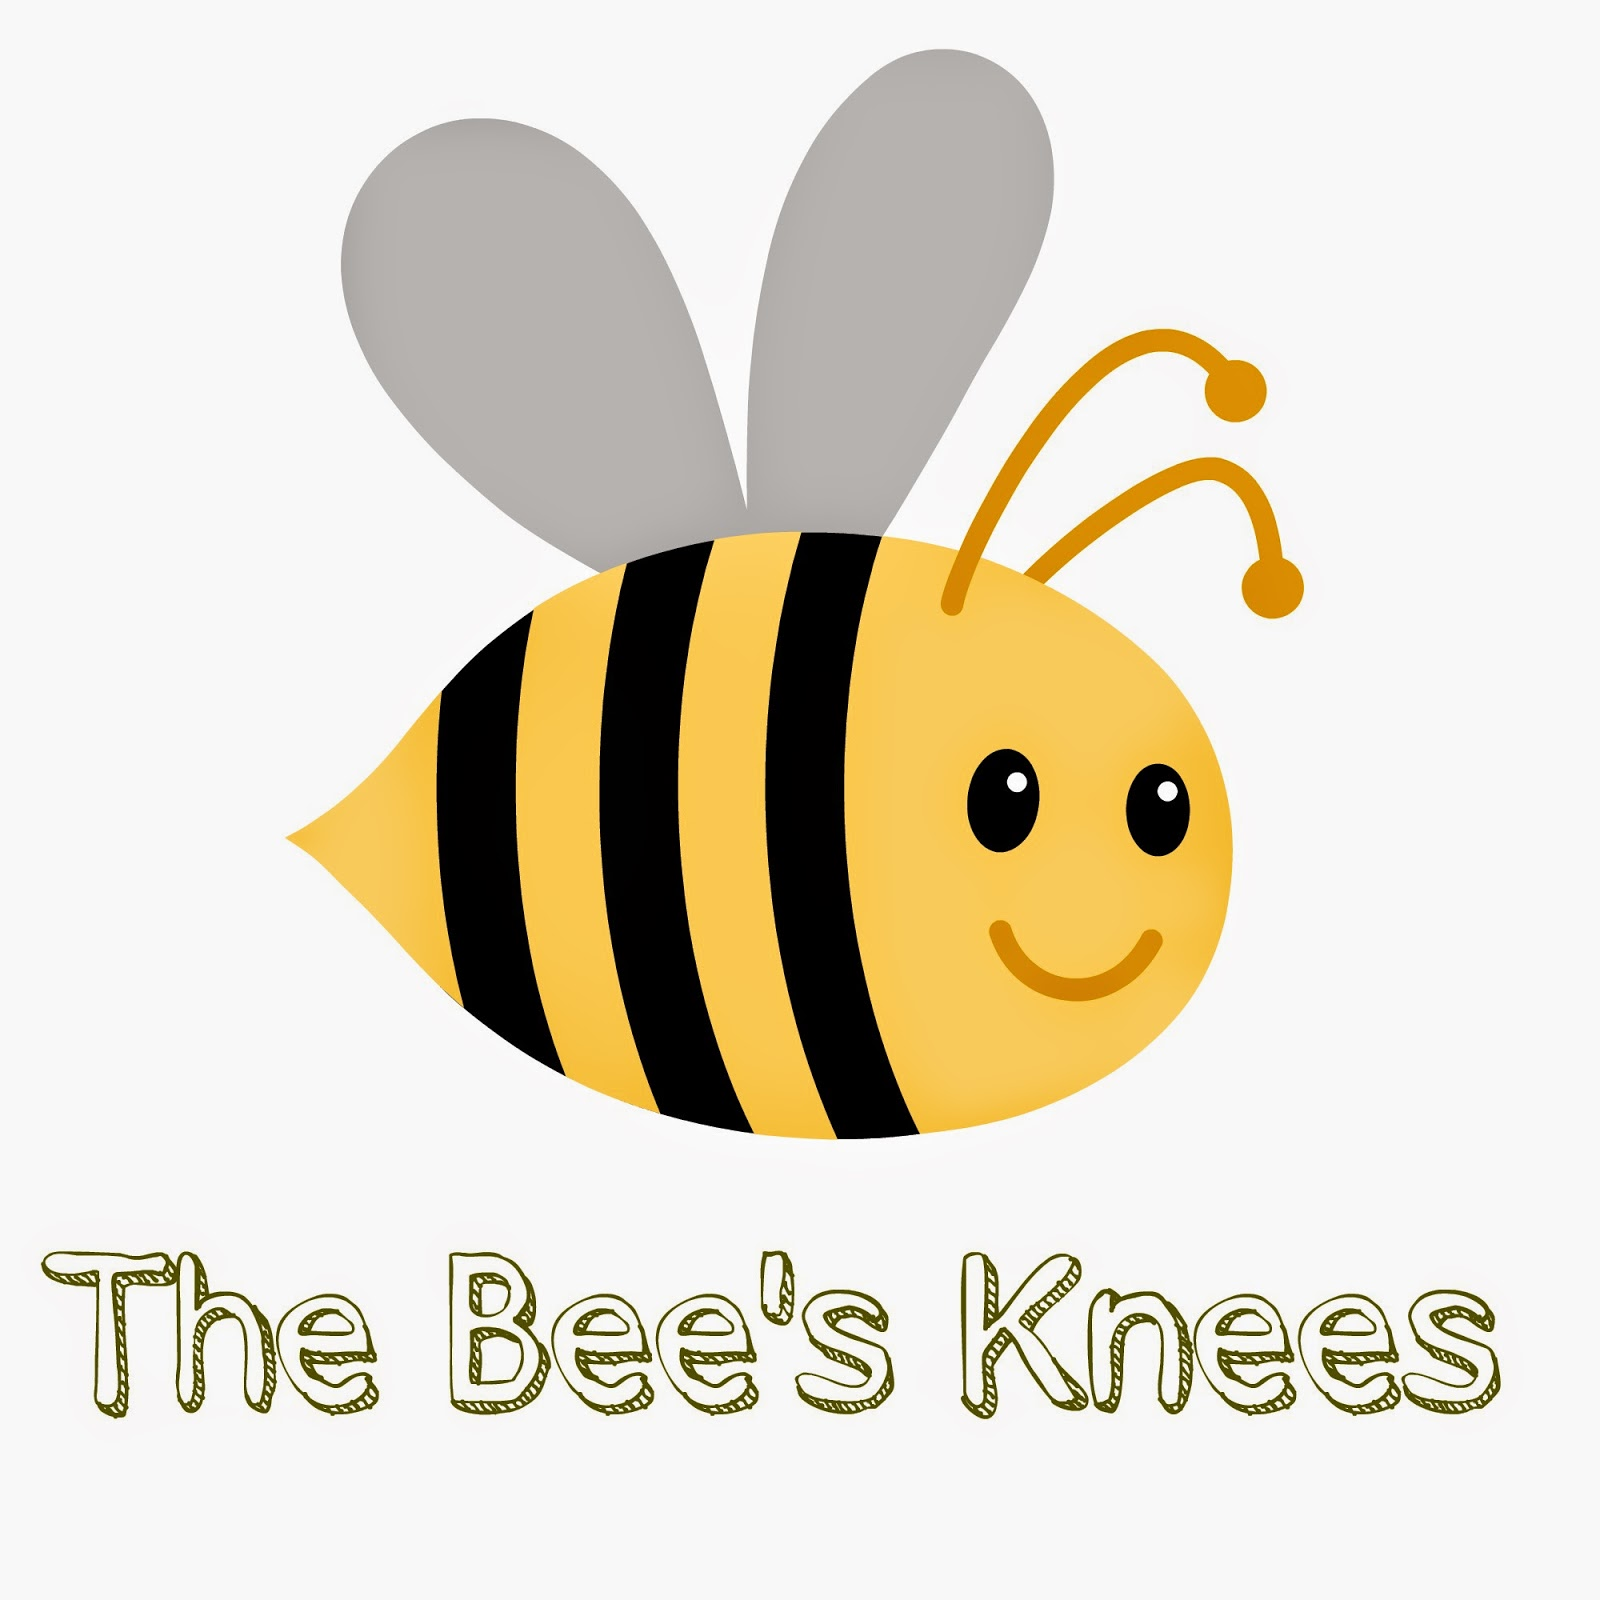 knees by the bees knees the bee s knees print 8x10 the bee s knees ...